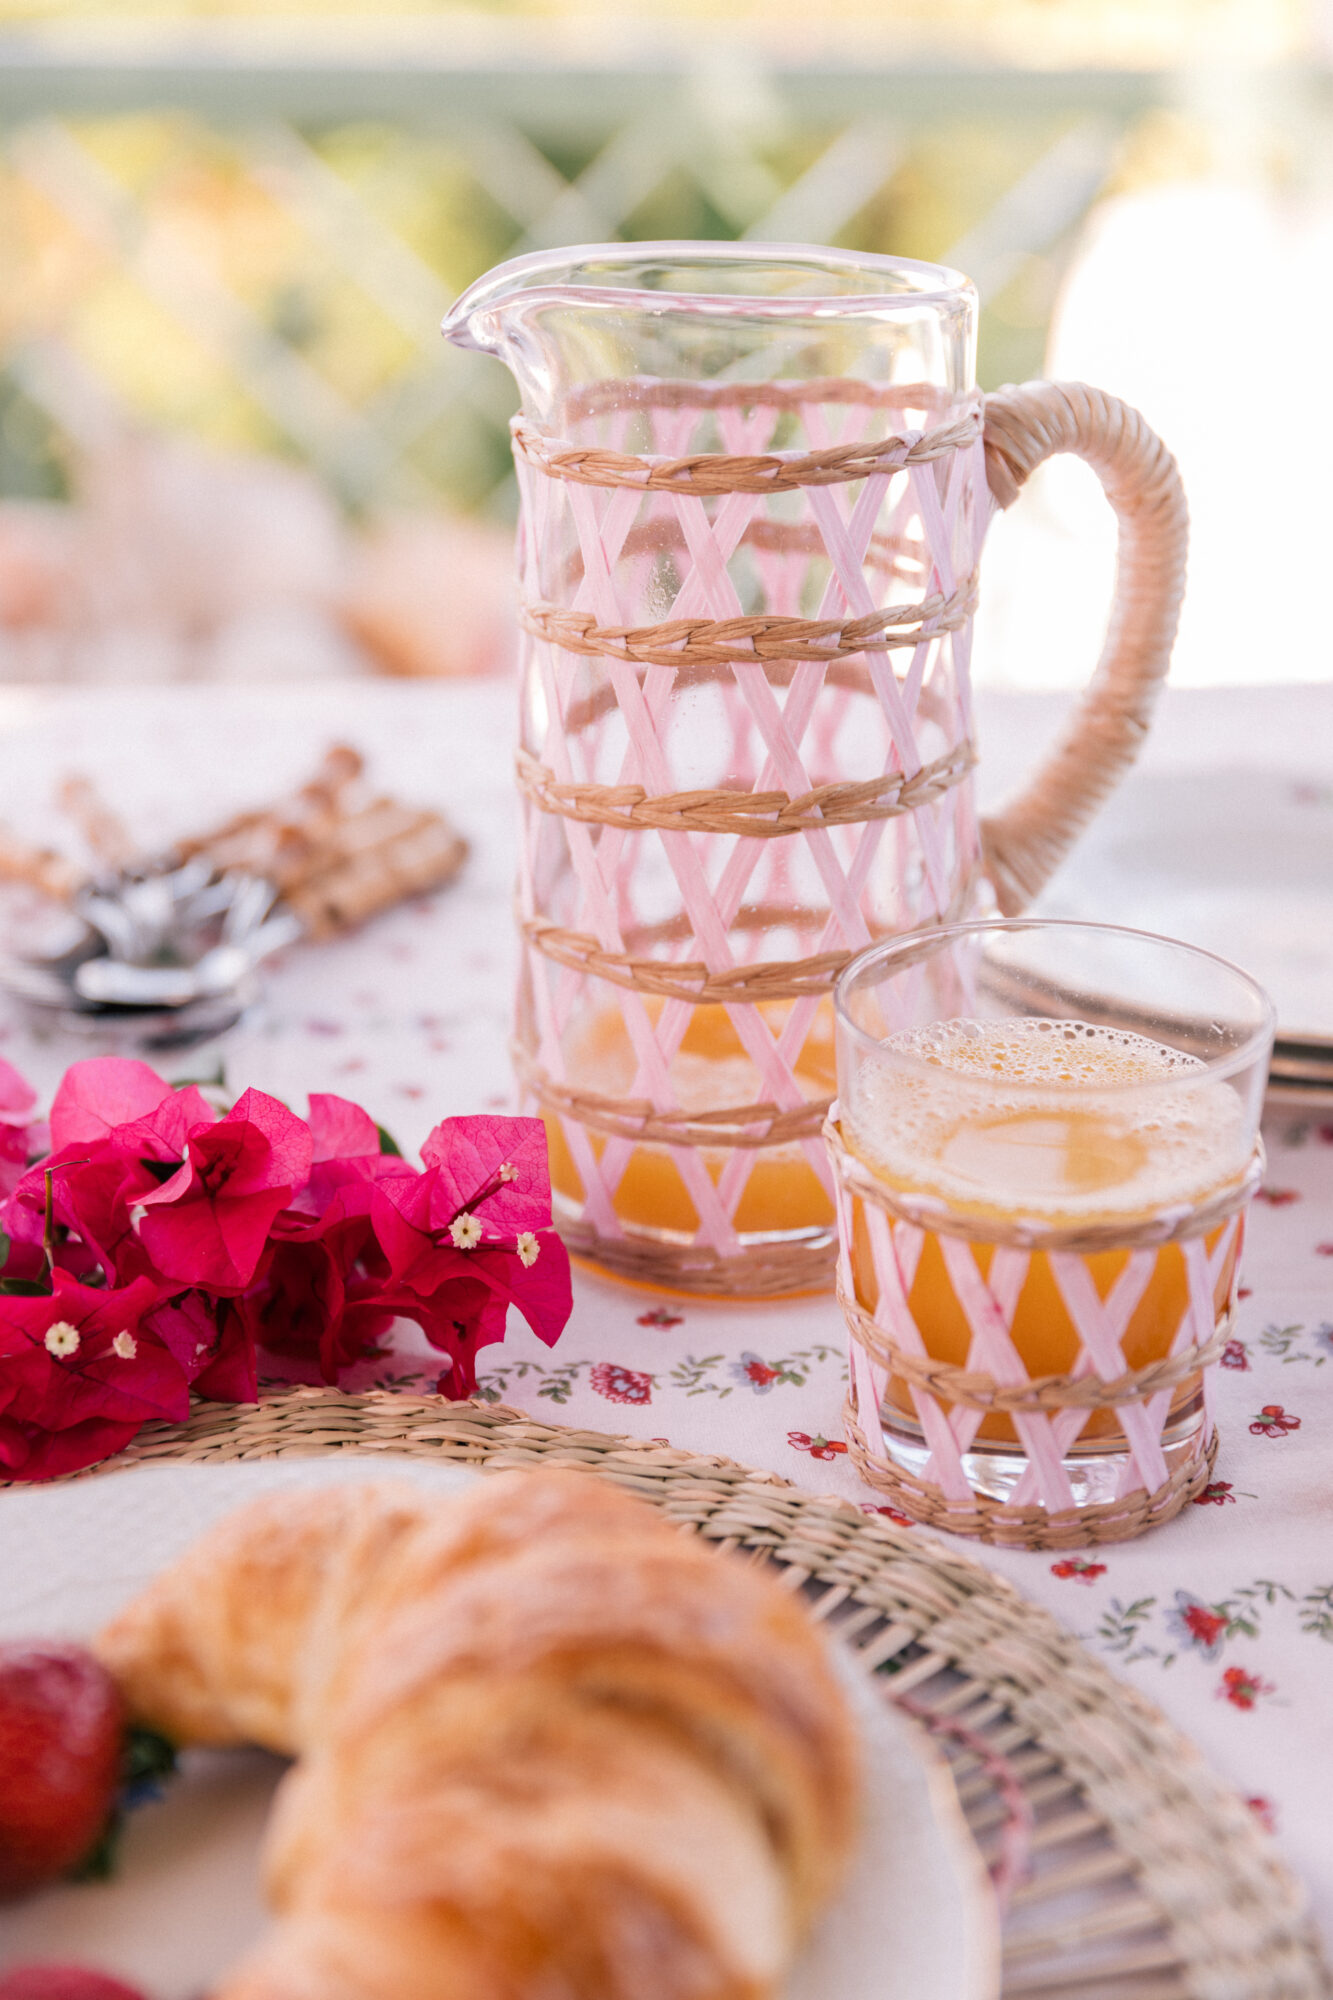 Blush-colored, rattan-detailed cups and pitchers dot the table